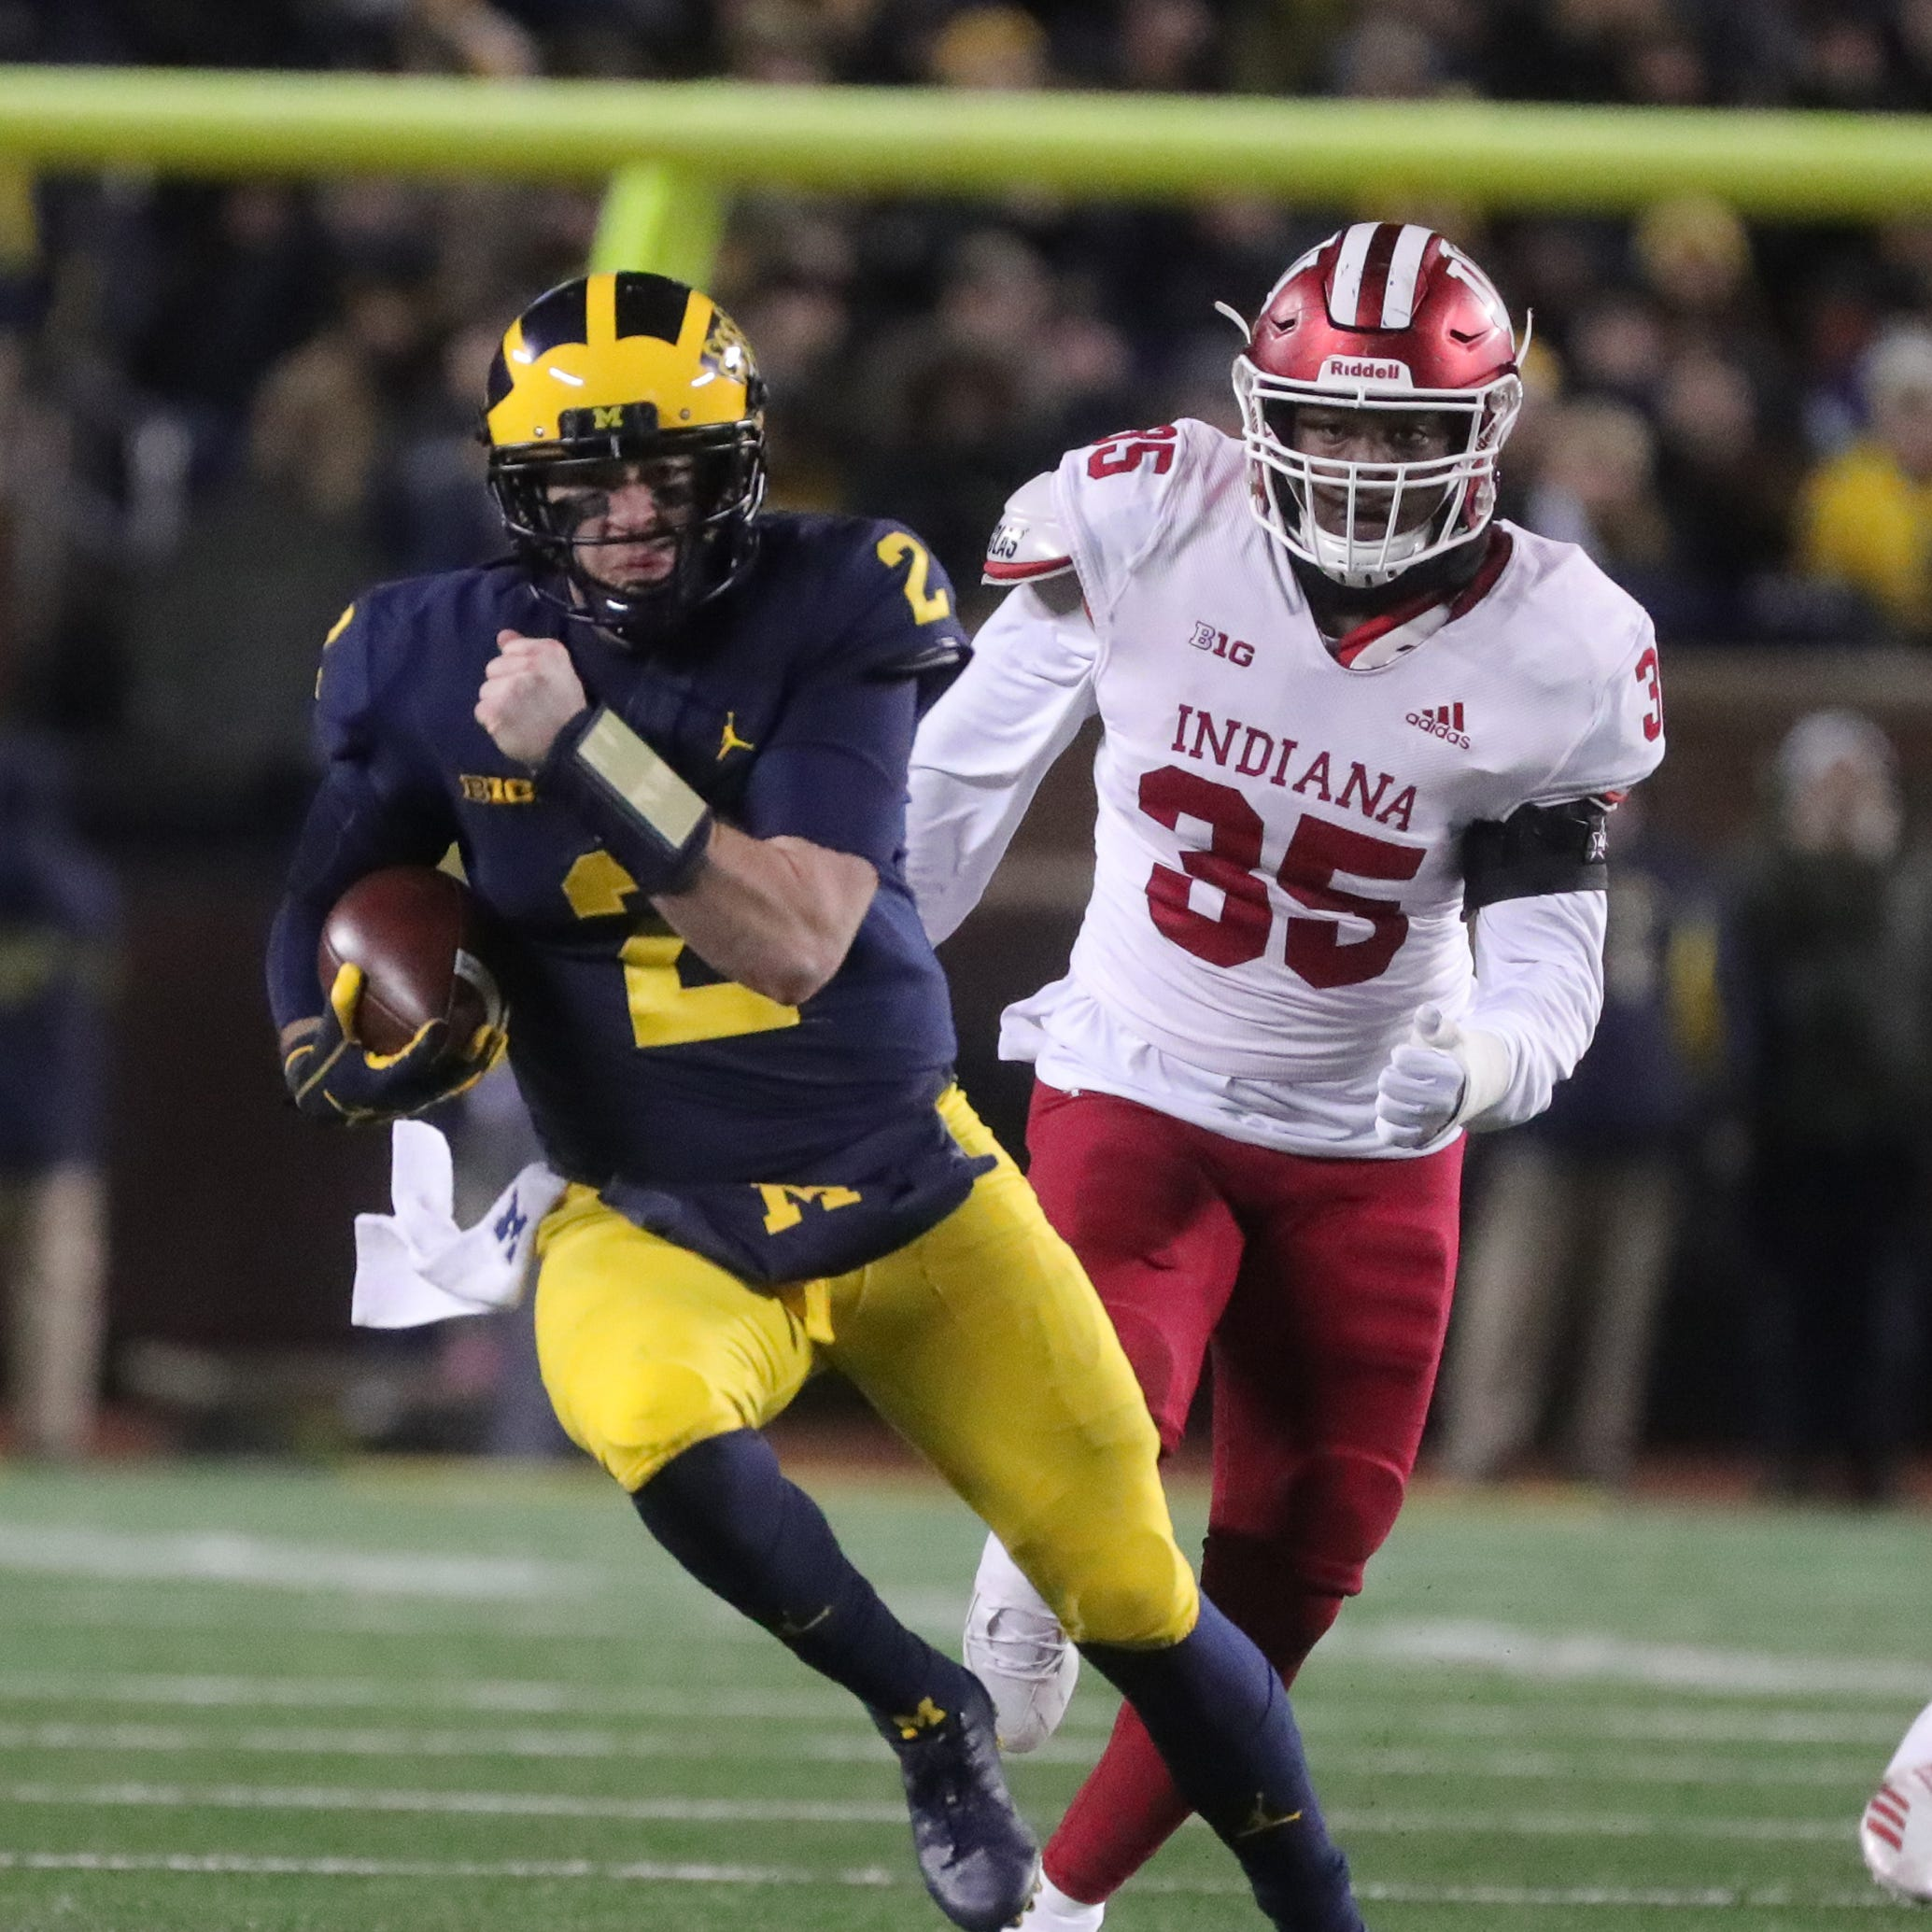 Michigan football remains fourth in AP poll; Ohio State down to 10th